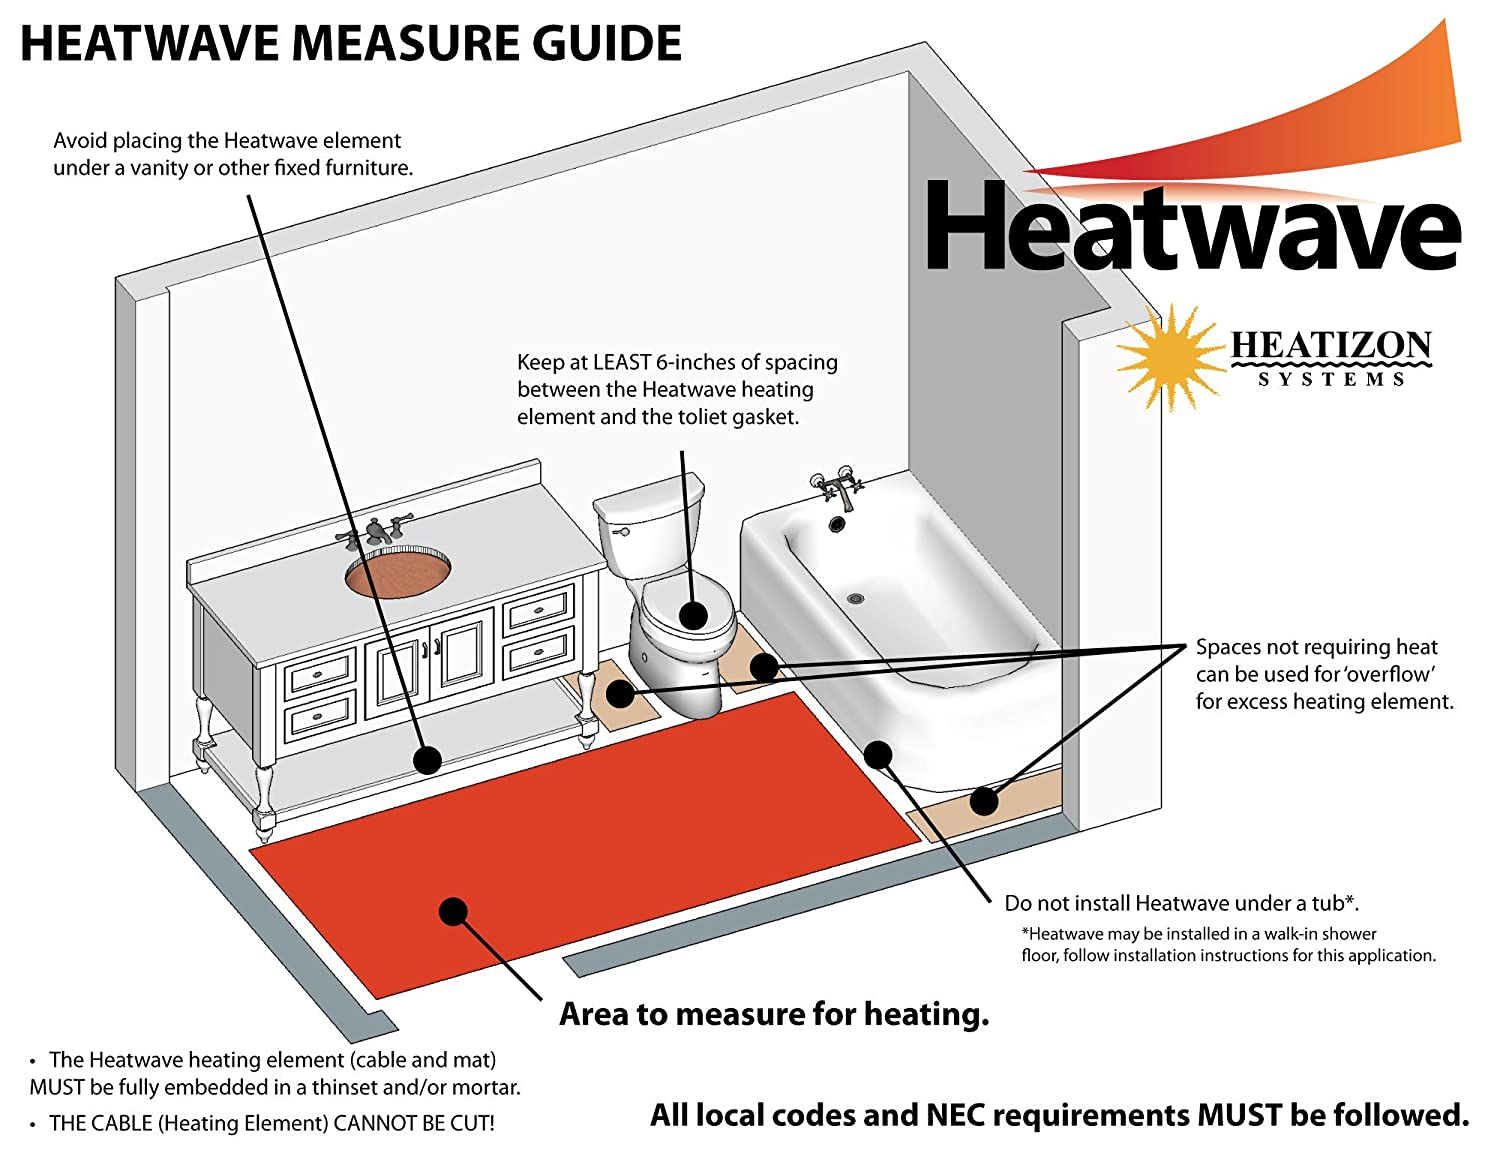 16-30 Square Feet with Required GFCI Programmable Thermostat HWC Heatwave Floor Heating Cable 120V